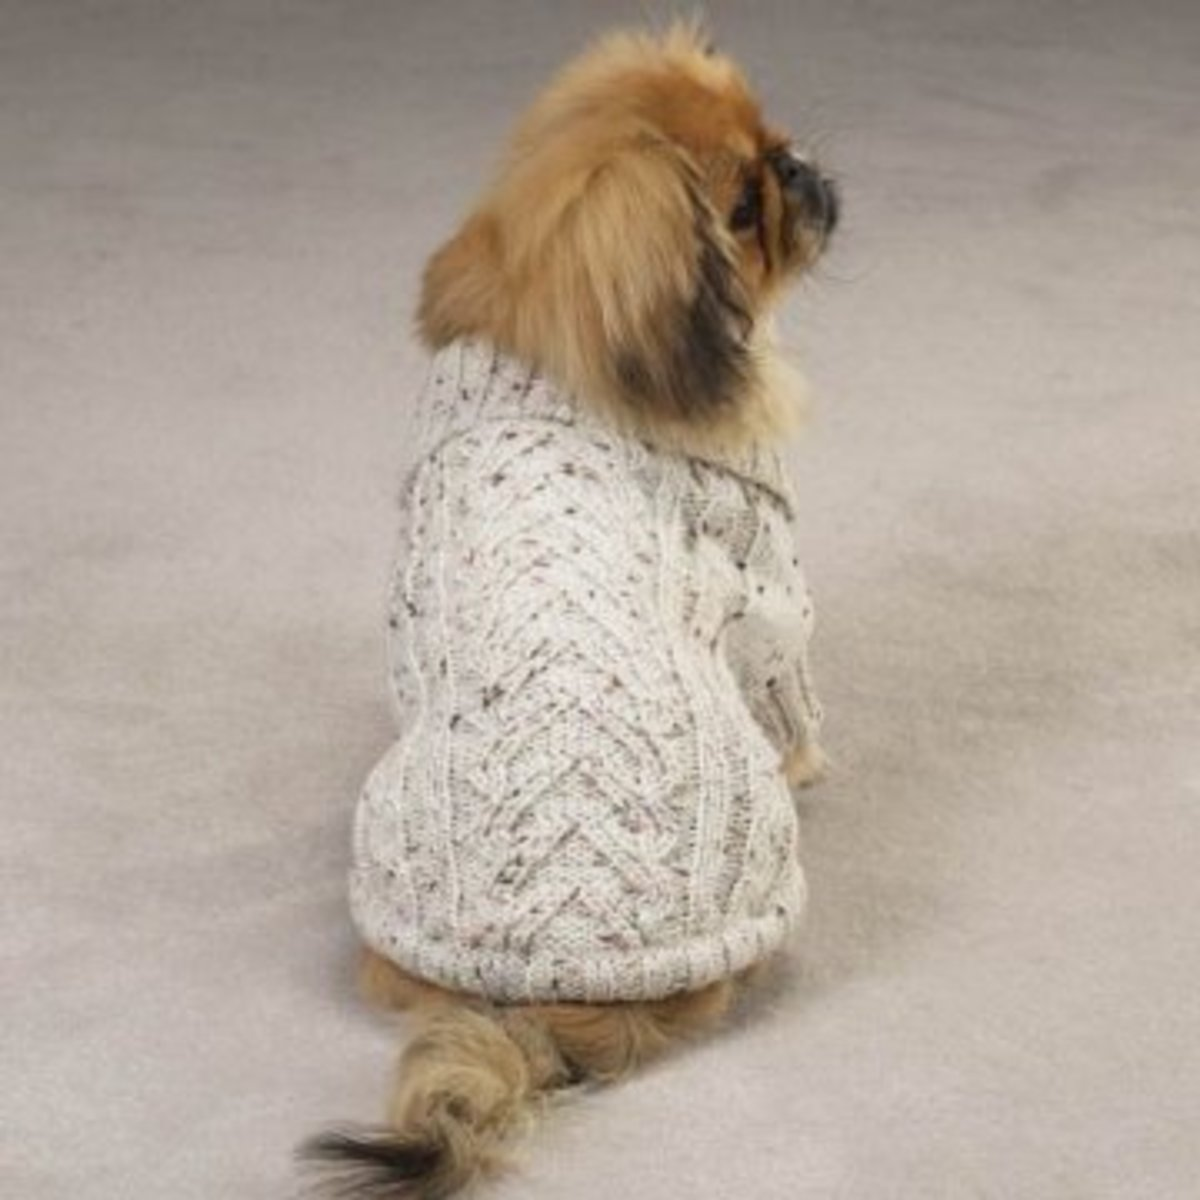 Knitting Pattern Large Dog Coat : 6 Free Dog Coat Knitting Patterns - Keep your dog Warm and Cozy with a New Coat!